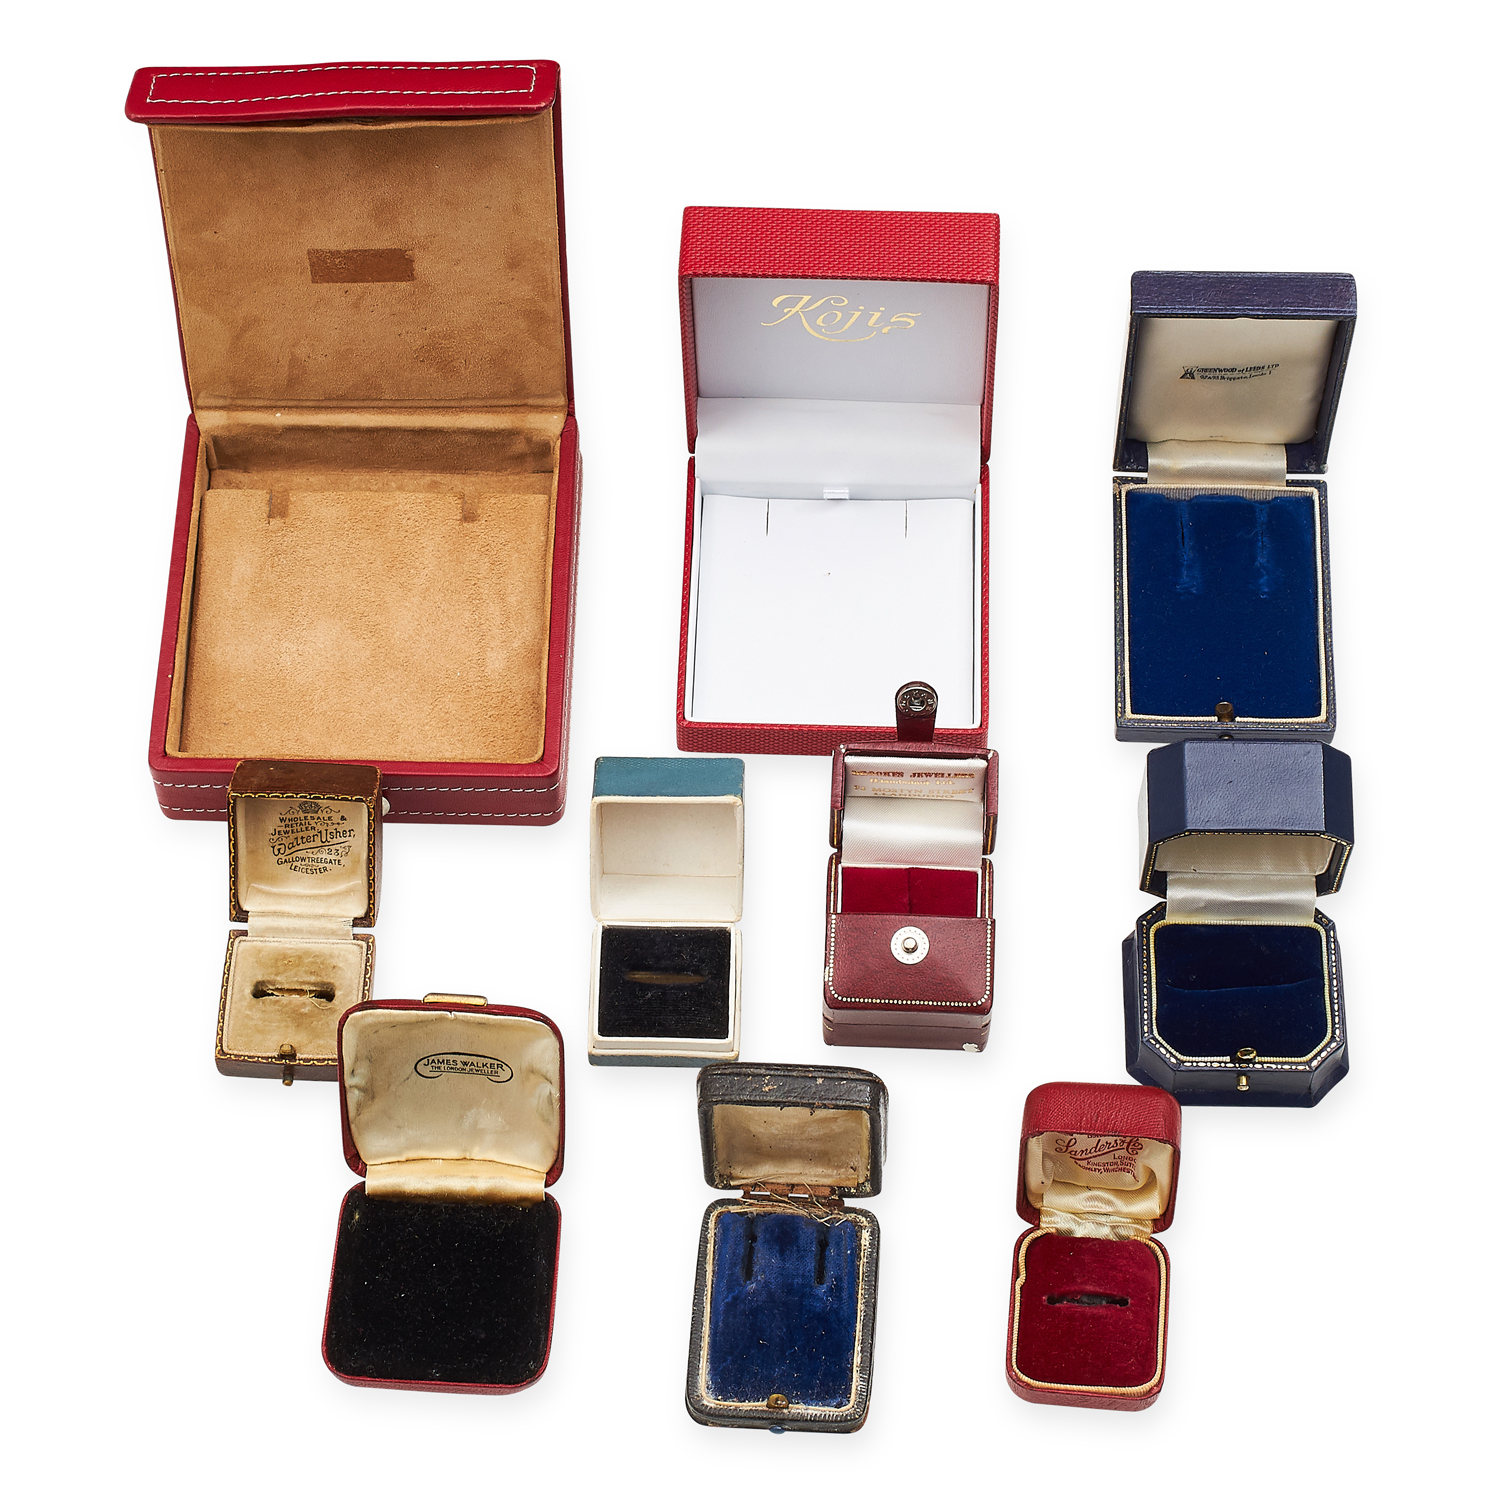 A SELECTION OF TEN VARIOUS ANTIQUE AND LATER JEWELLERY BOXES including some ring and earrings - Image 2 of 2